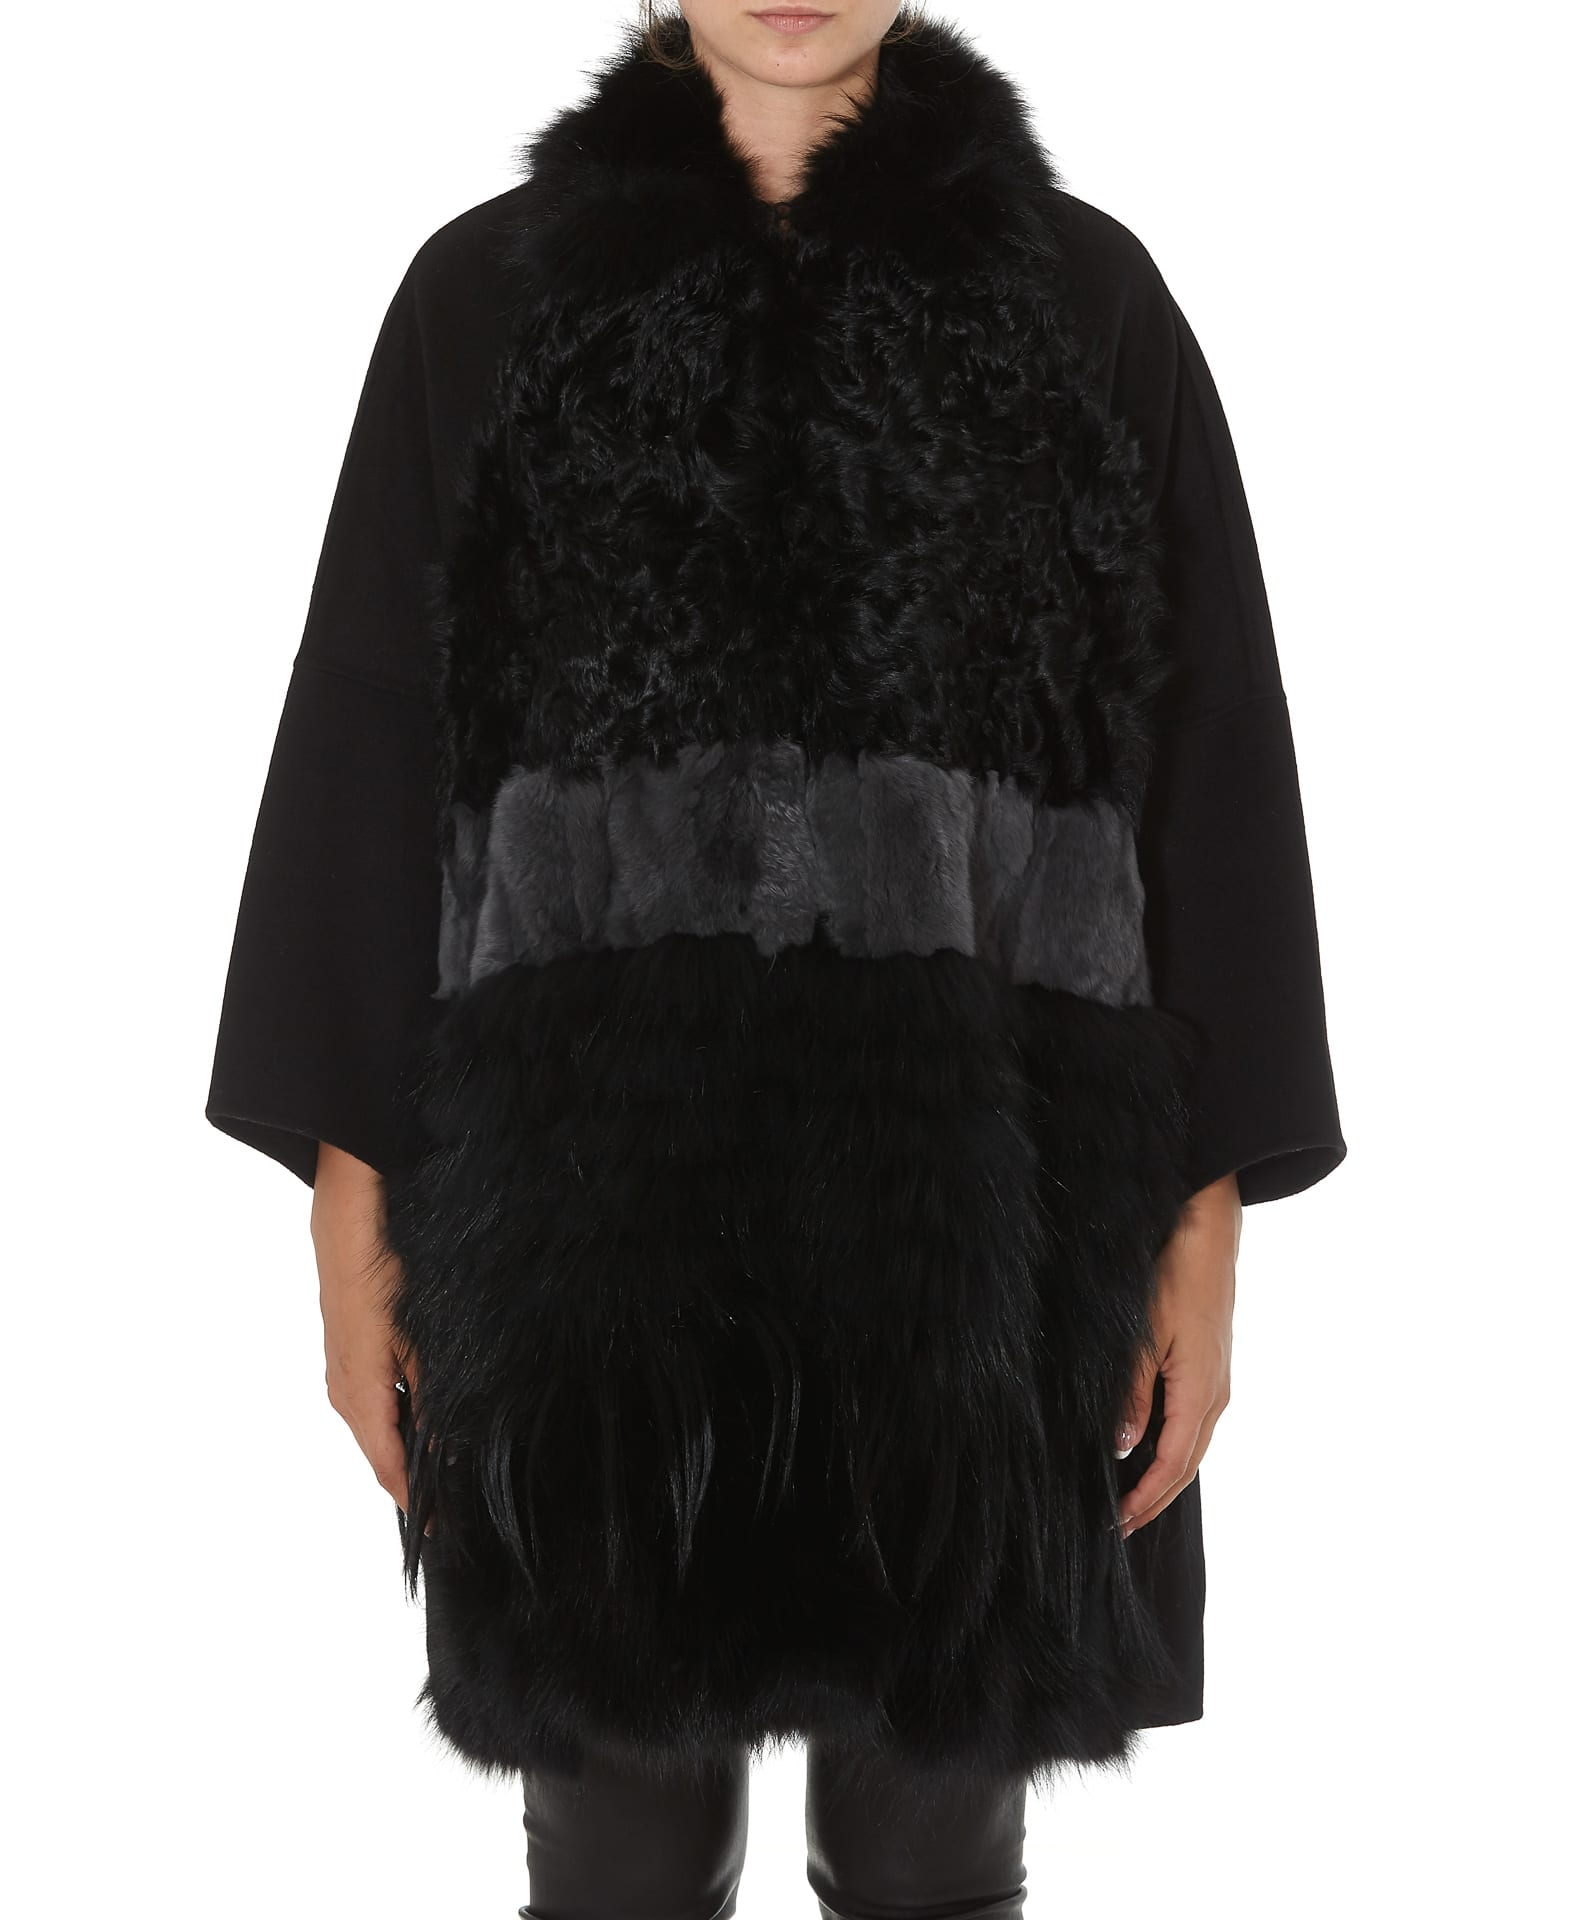 Photo of  Caban Romantic Coat With Fur Details- shop Caban Romantic jackets online sales